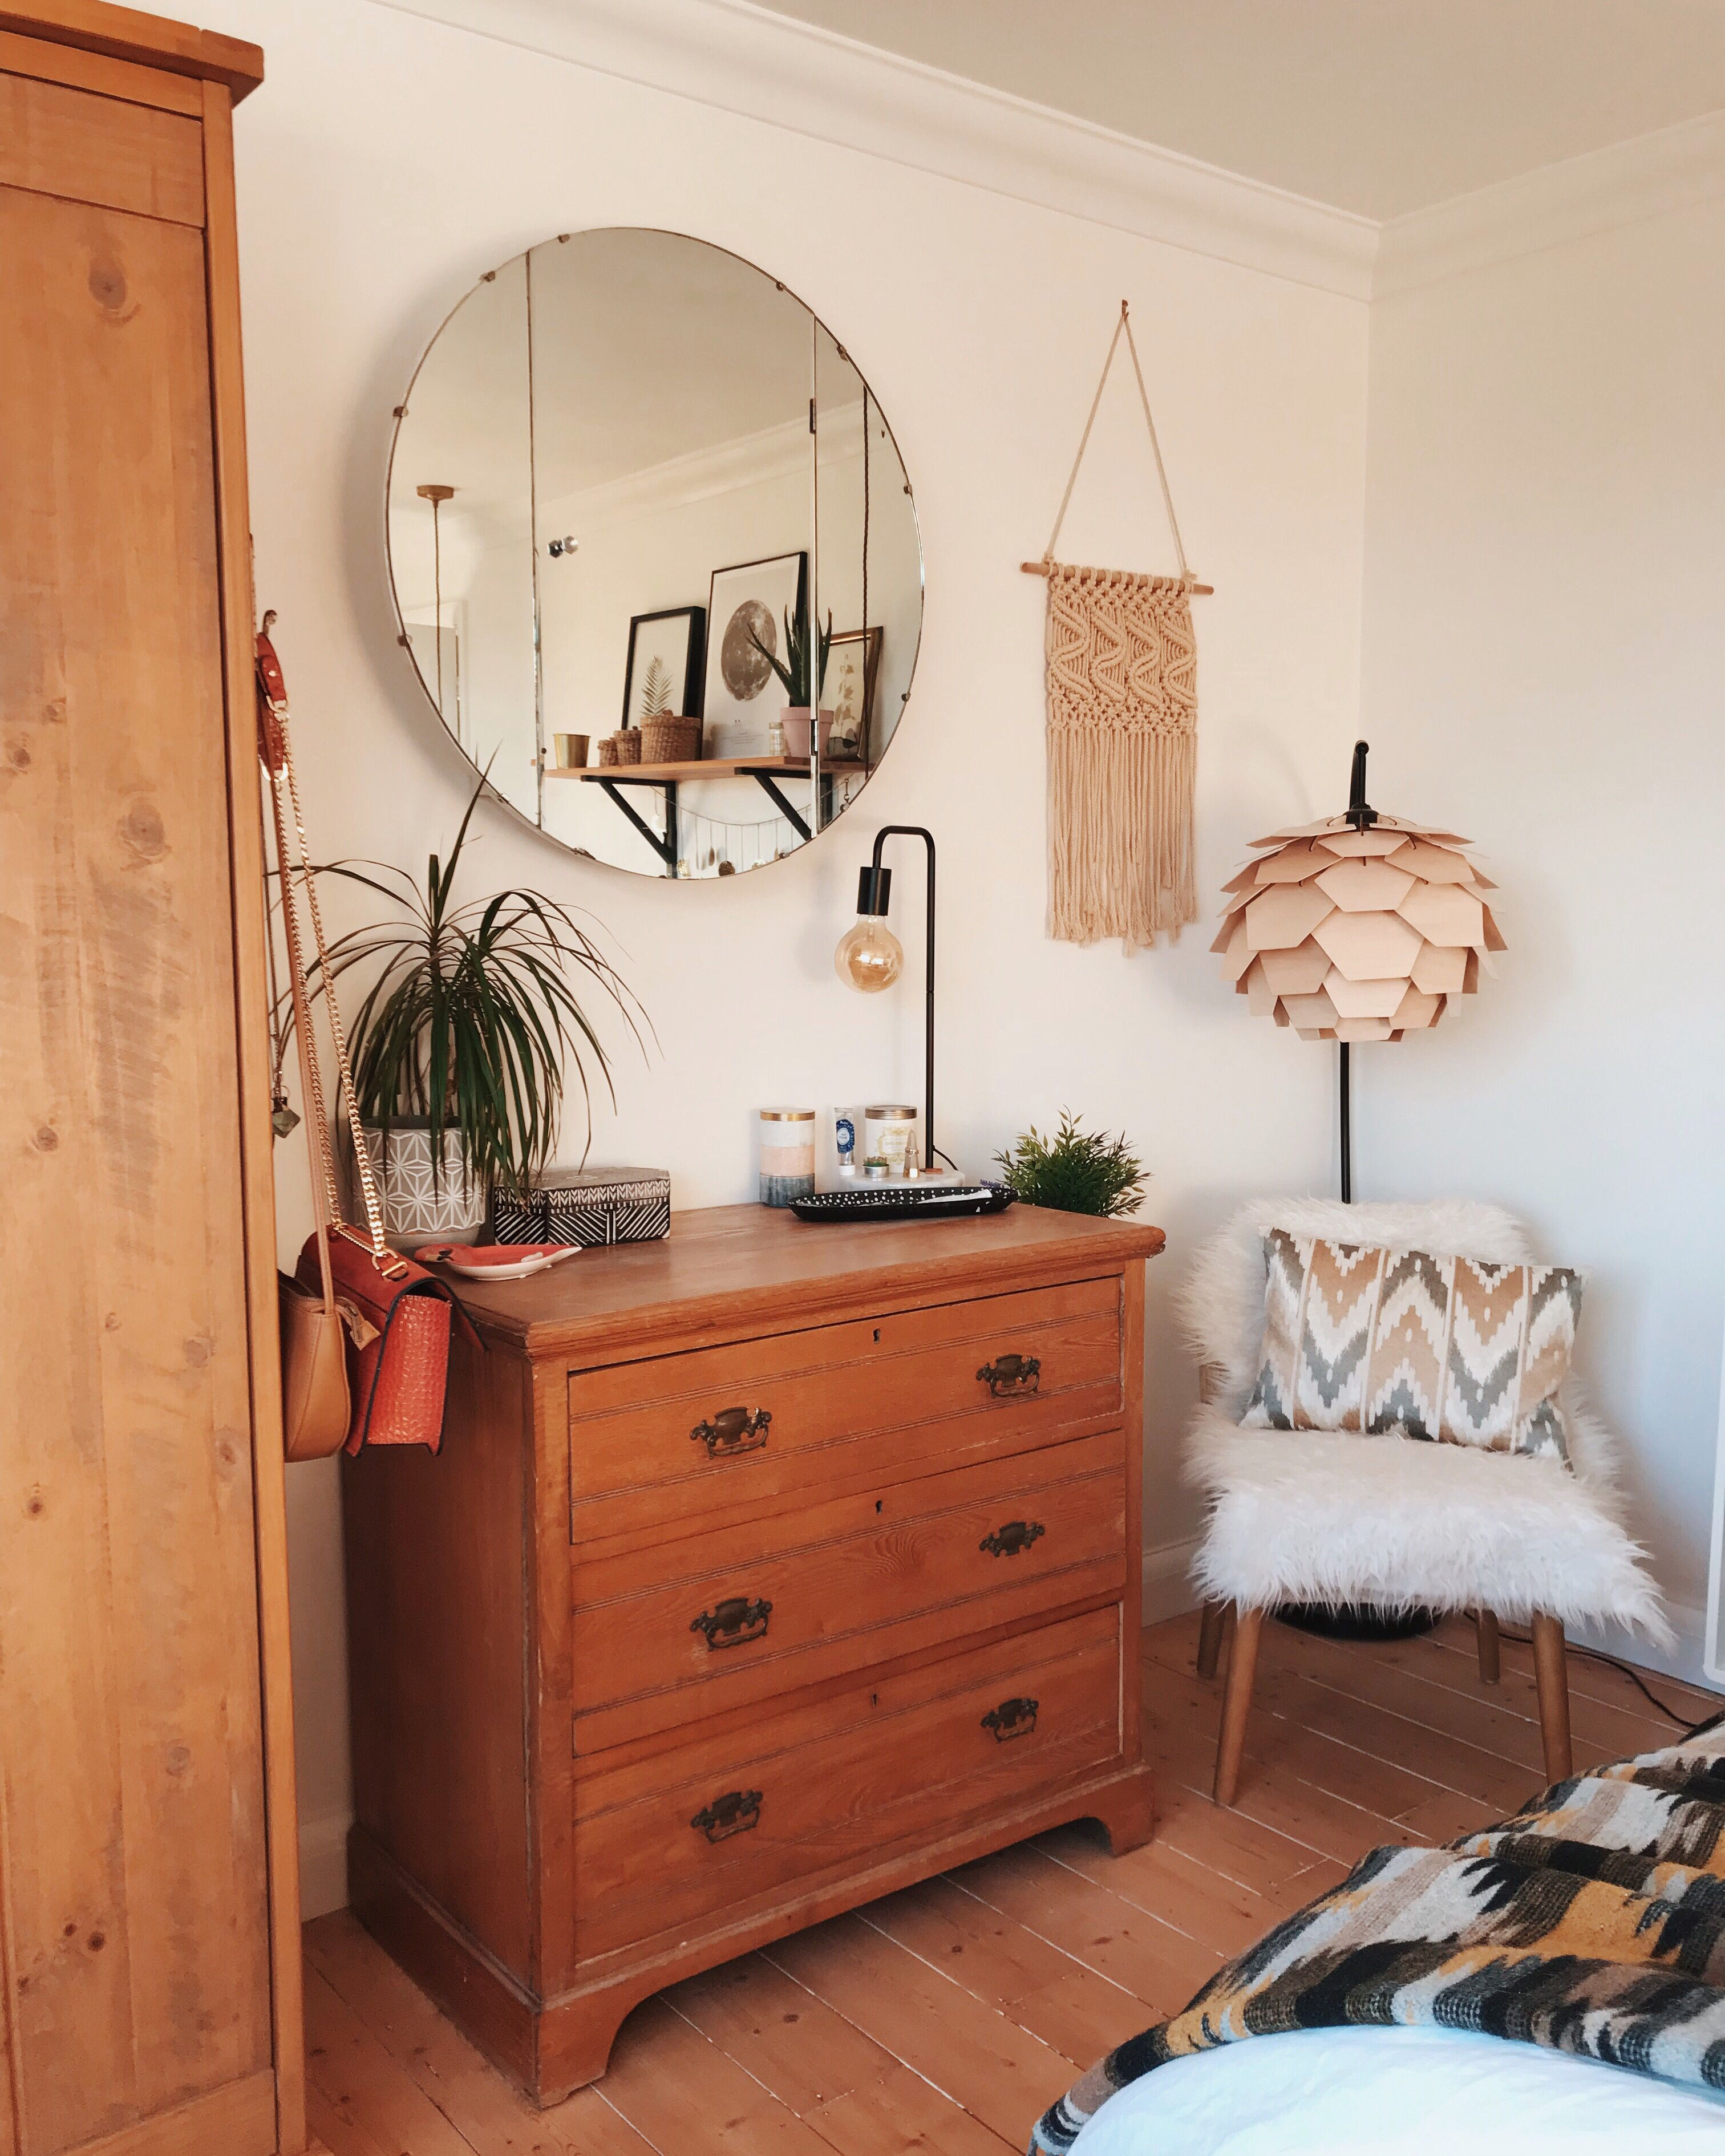 Photo of Thrifted bedroom furniture creates cosy Scandi vibe.